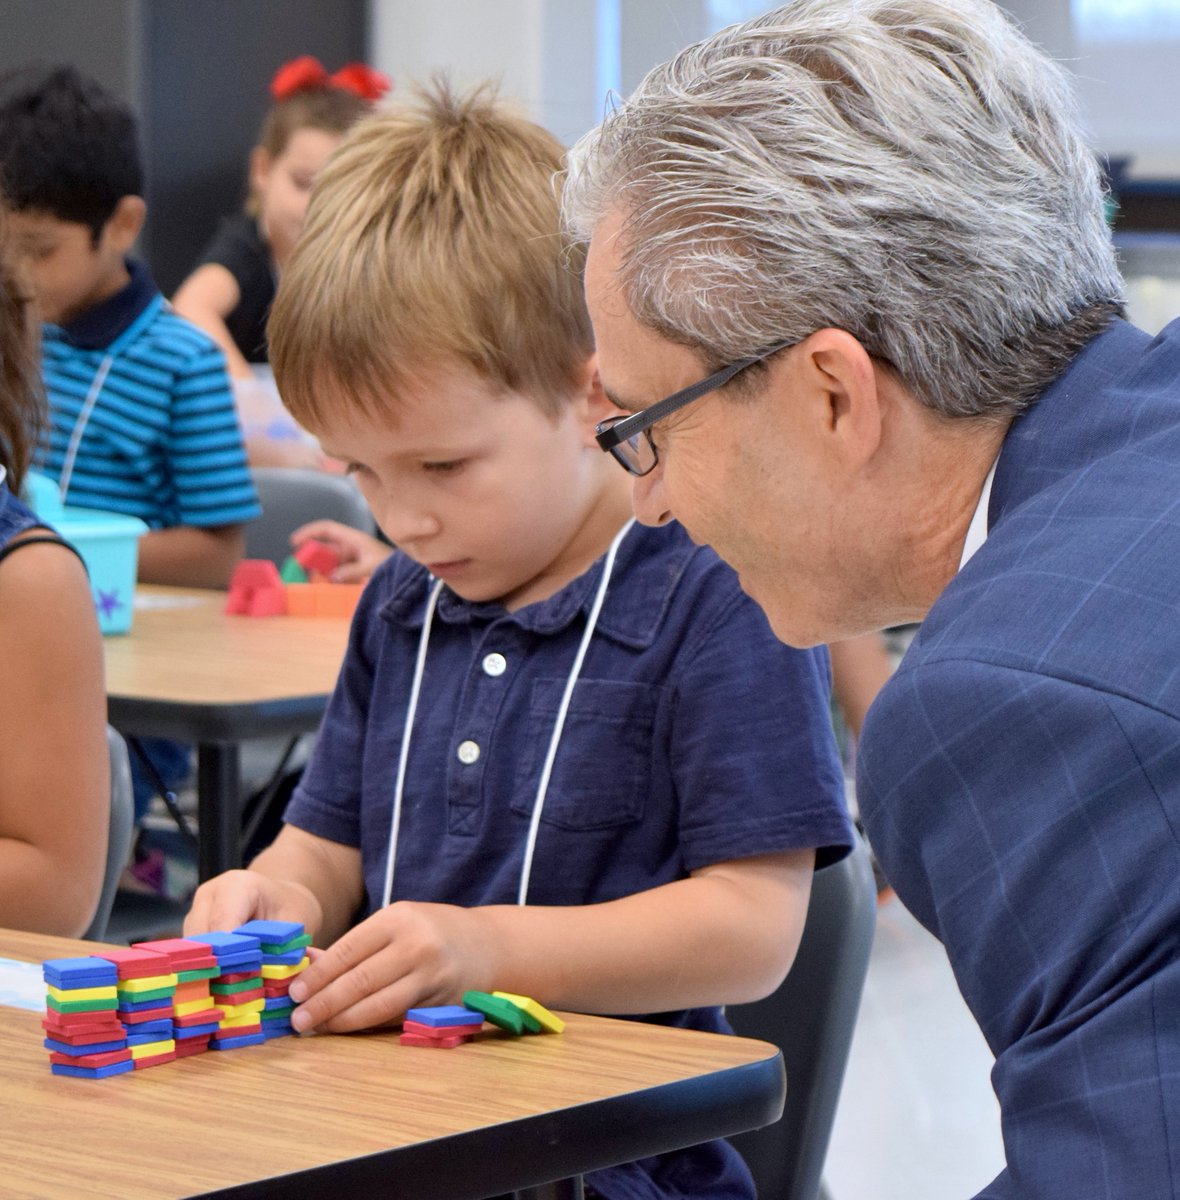 full day kindergarten research paper Either provided as a full school day (typically about 6 hours) or as a half-day program (generally 2ð3 hours), # with children attending kindergarten either in the morning or afternoon.